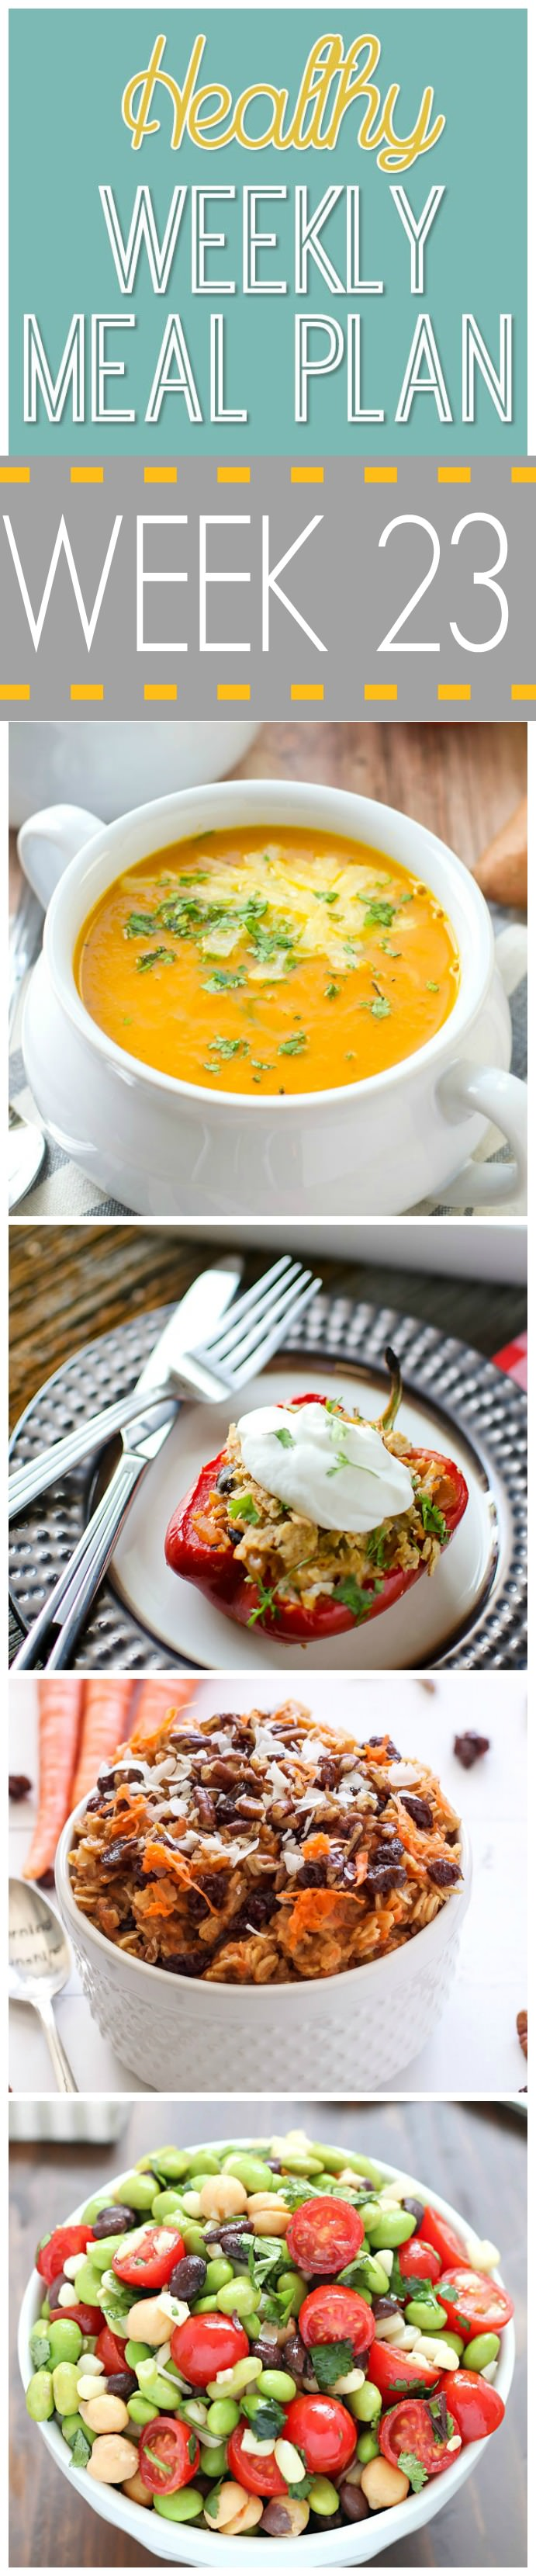 Healthy Menu Plan starts strong with a week filled of comfort food, such as Sweet Potato Apple Soup, Slow Cooker Hawaiian Pork Burrito Bowls, Chicken Pot Pie Pizza!